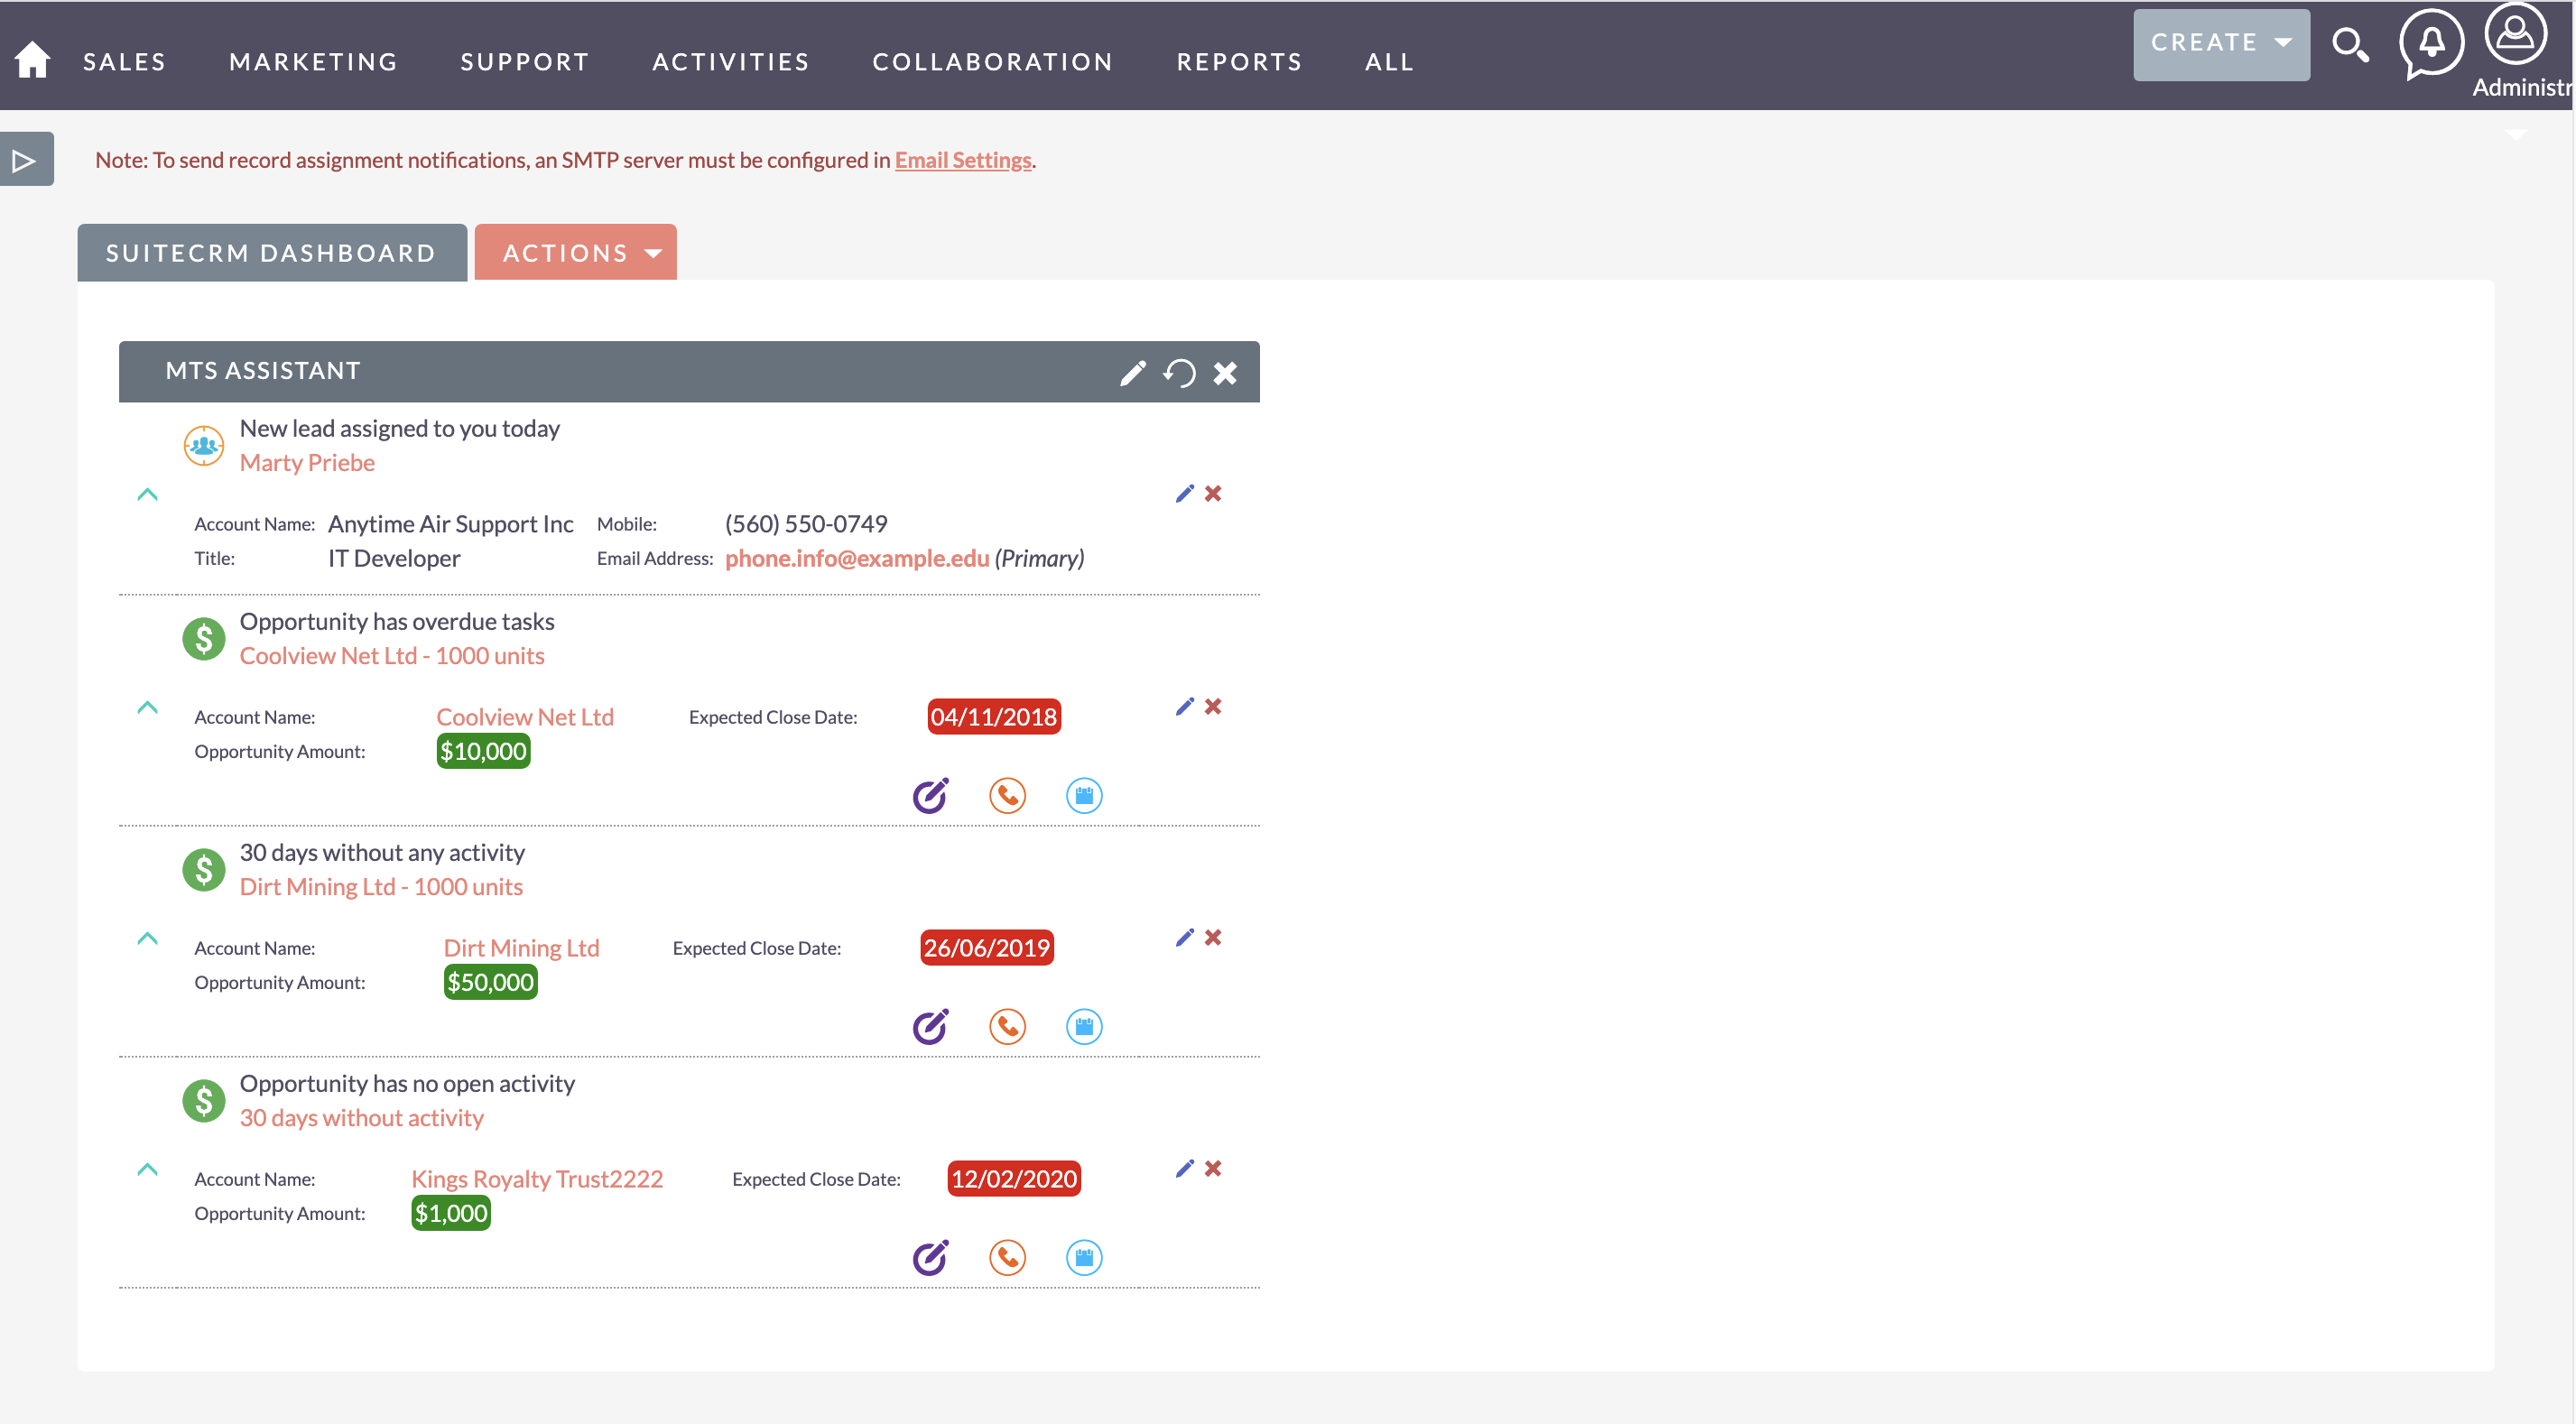 MTS Assistant for SuiteCRM dashboard